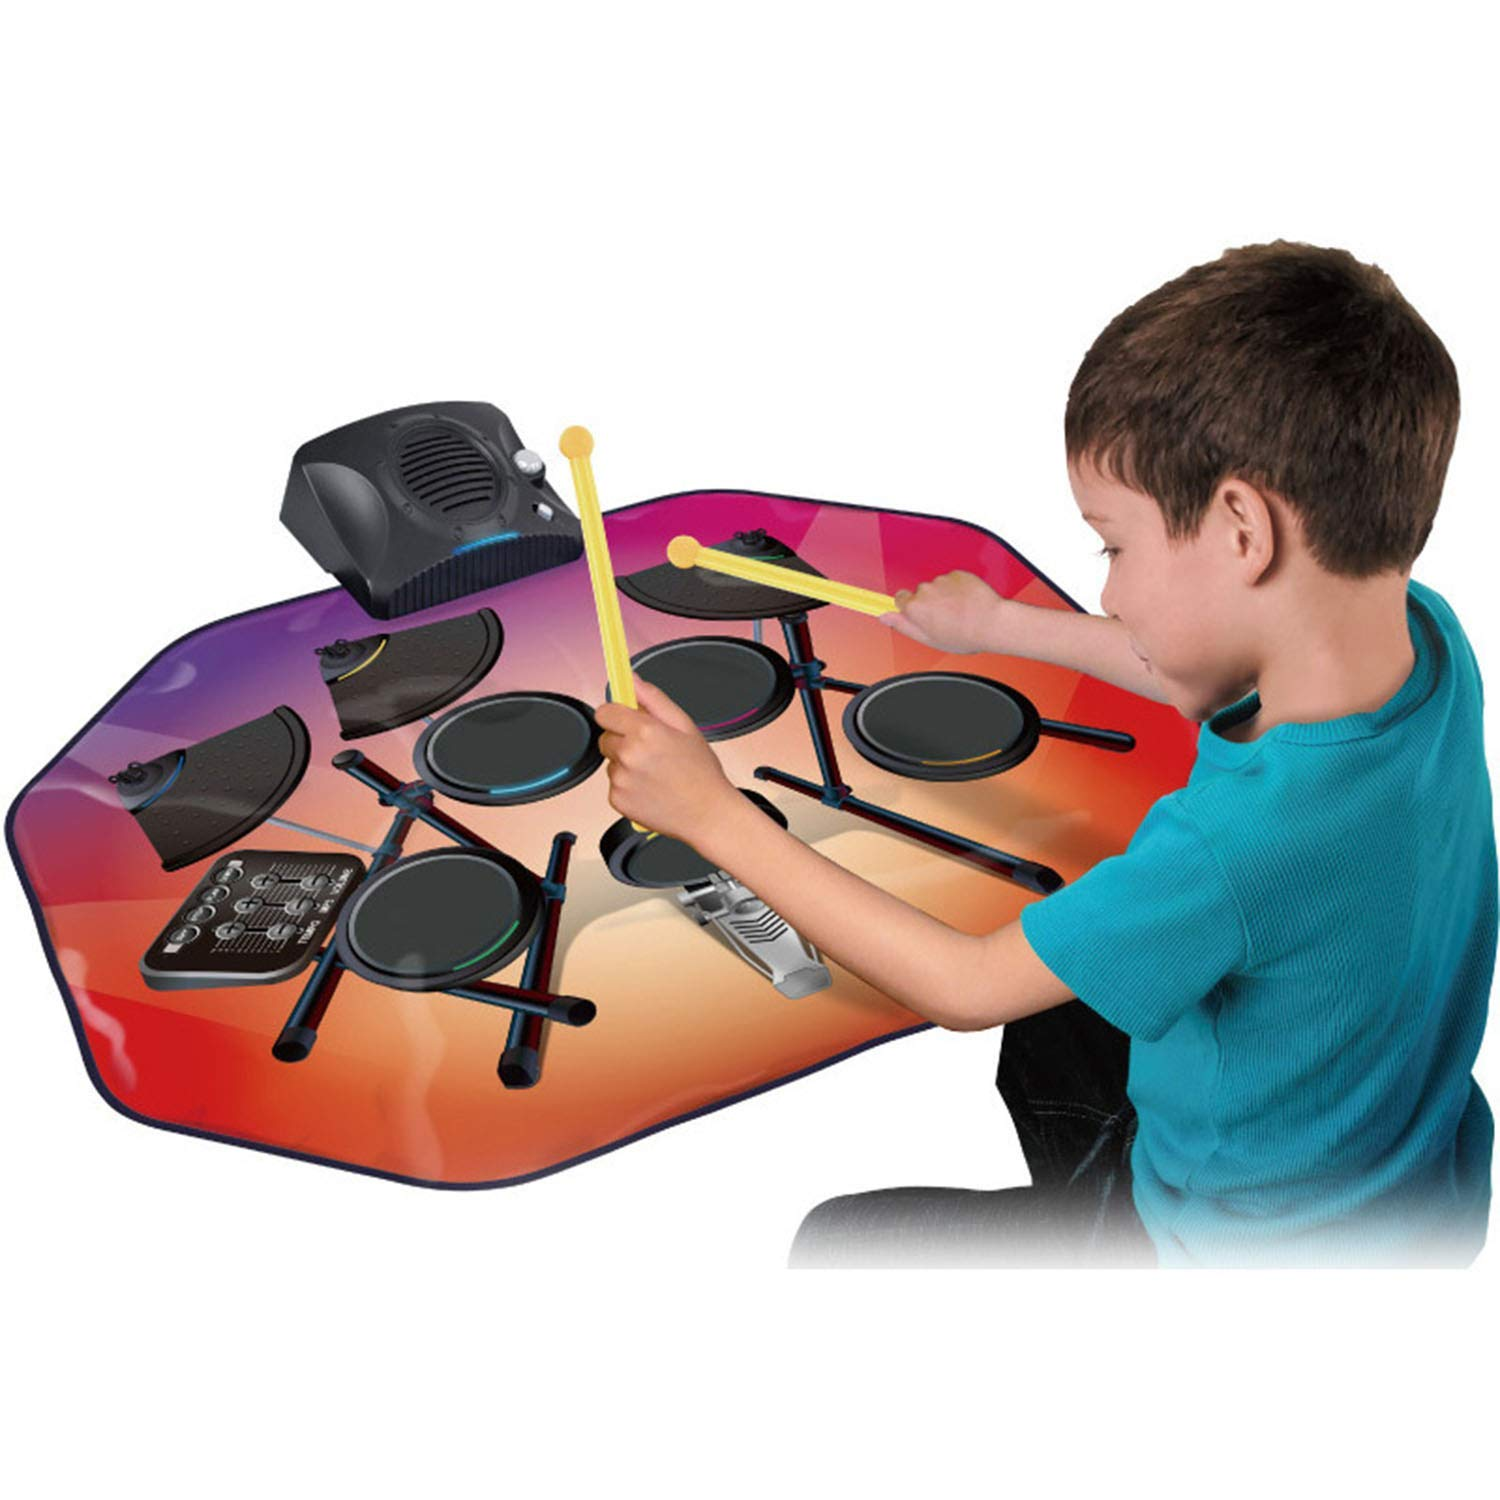 Drum Music Blanket, Jazz Drum Game Pad, Carpet Dance Mat, with Built in Music Tracks, 5 Music, Recording Function, Can Connect to Mobile Phone by ankt777 (Image #1)